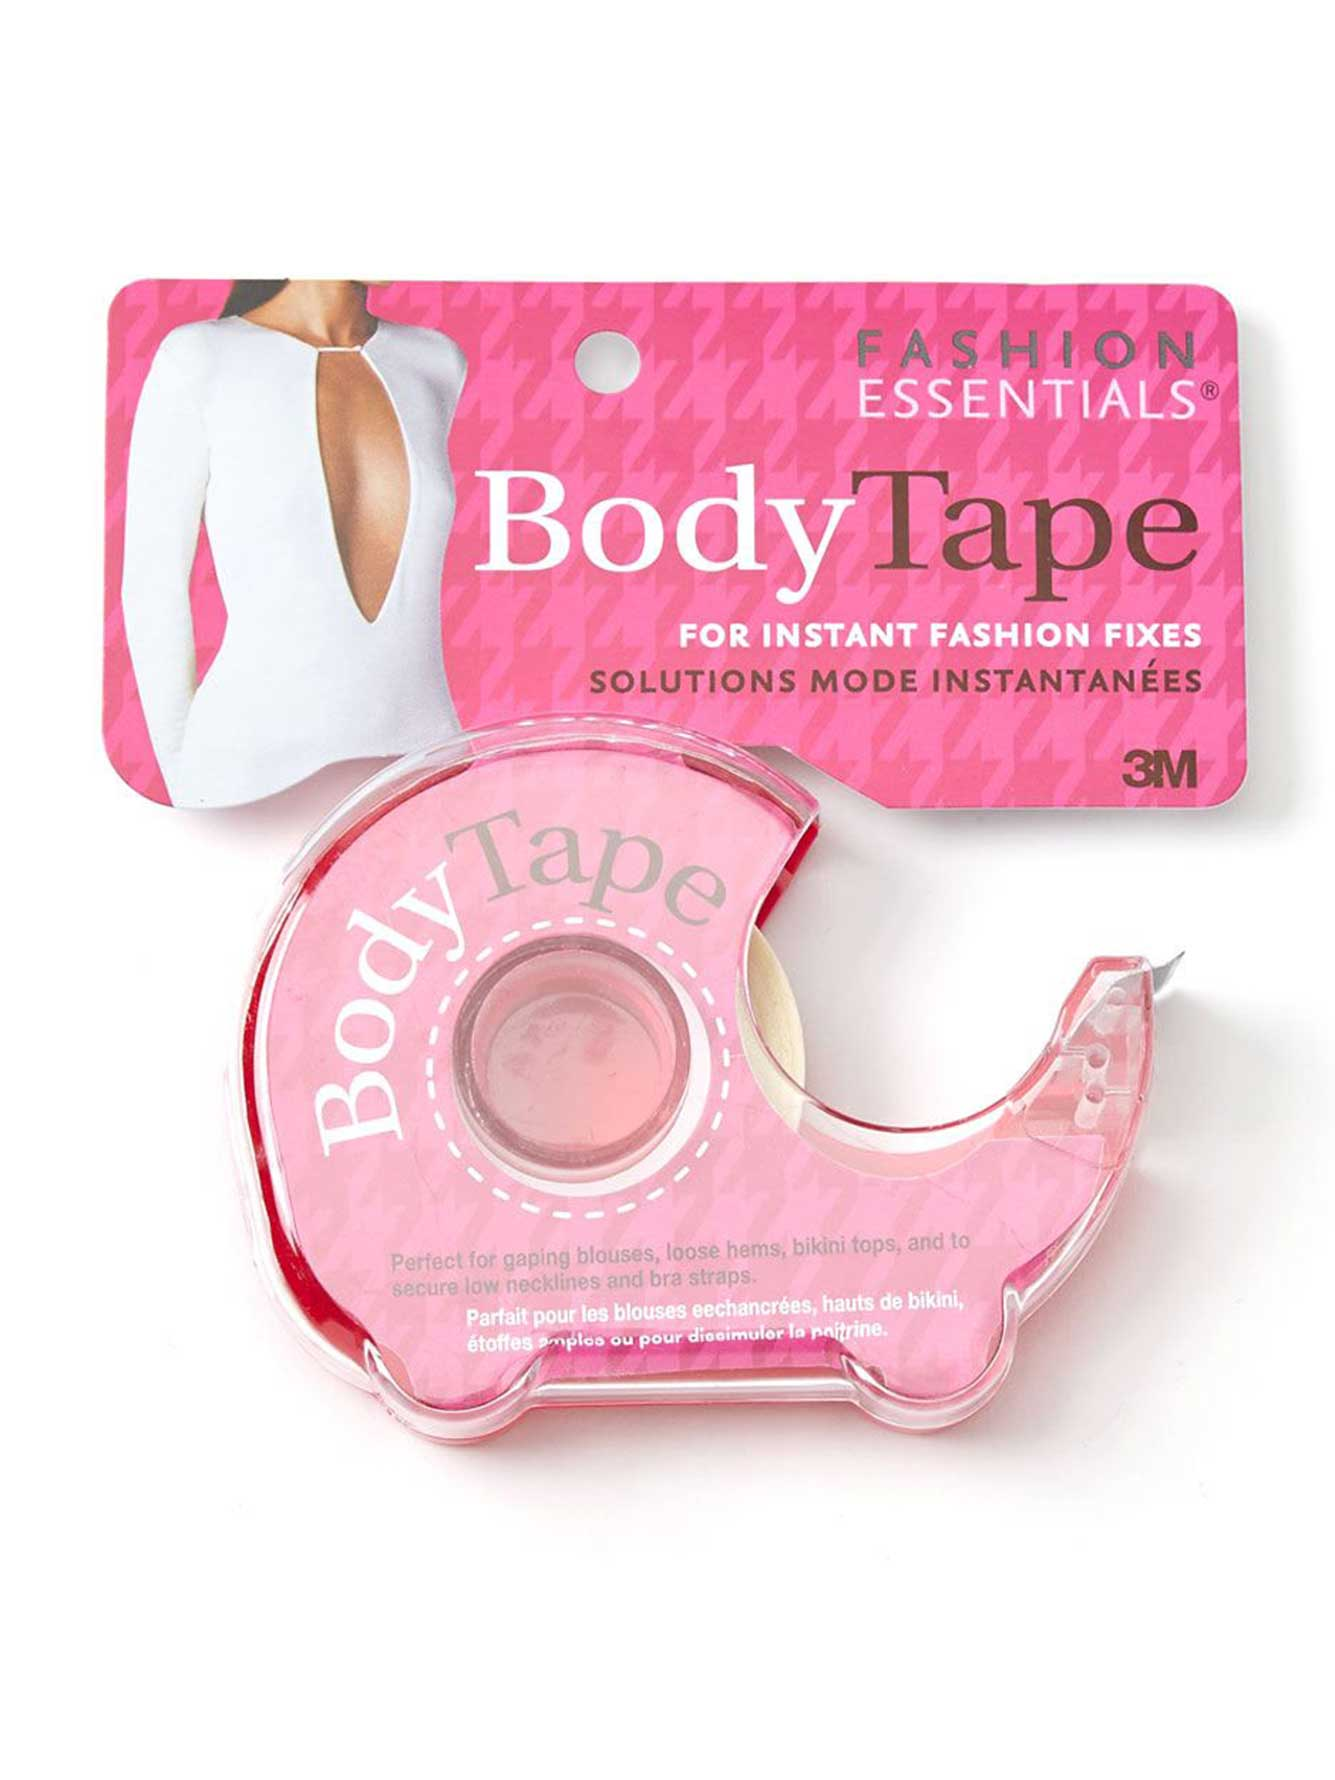 Stock Photos, Vectors and Royalty Free Images from 123RF Fashion fix body tape